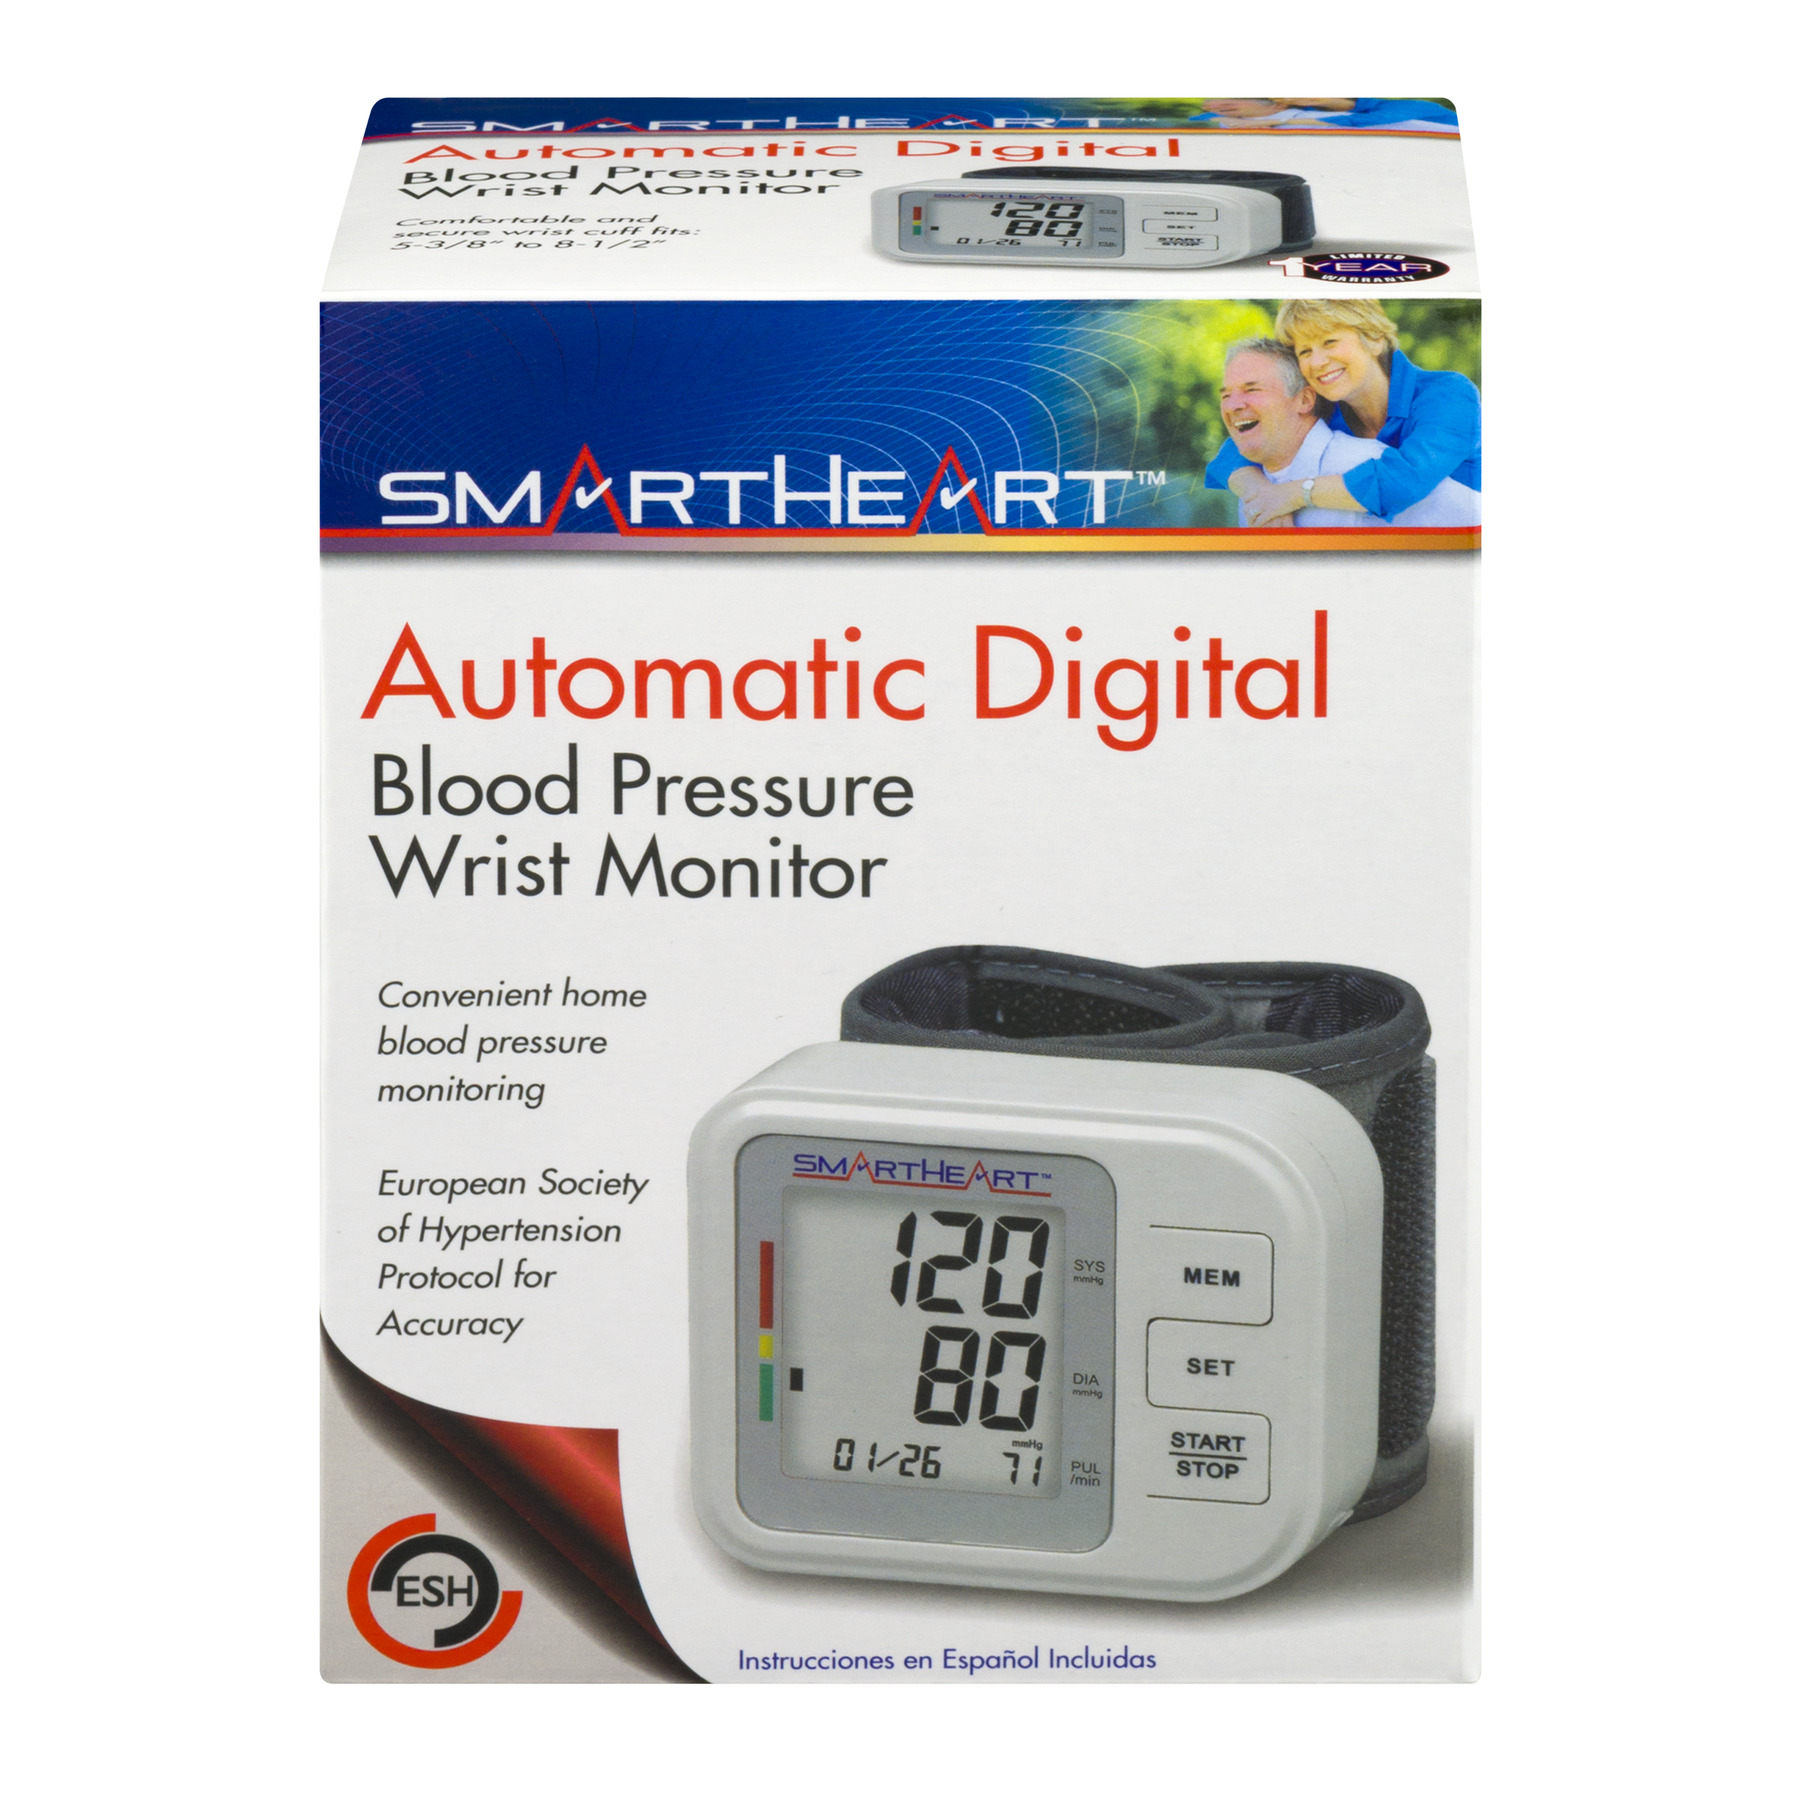 SmartHeart Automatic Digital Blood Pressure Wrist Monitor, 1.0 CT